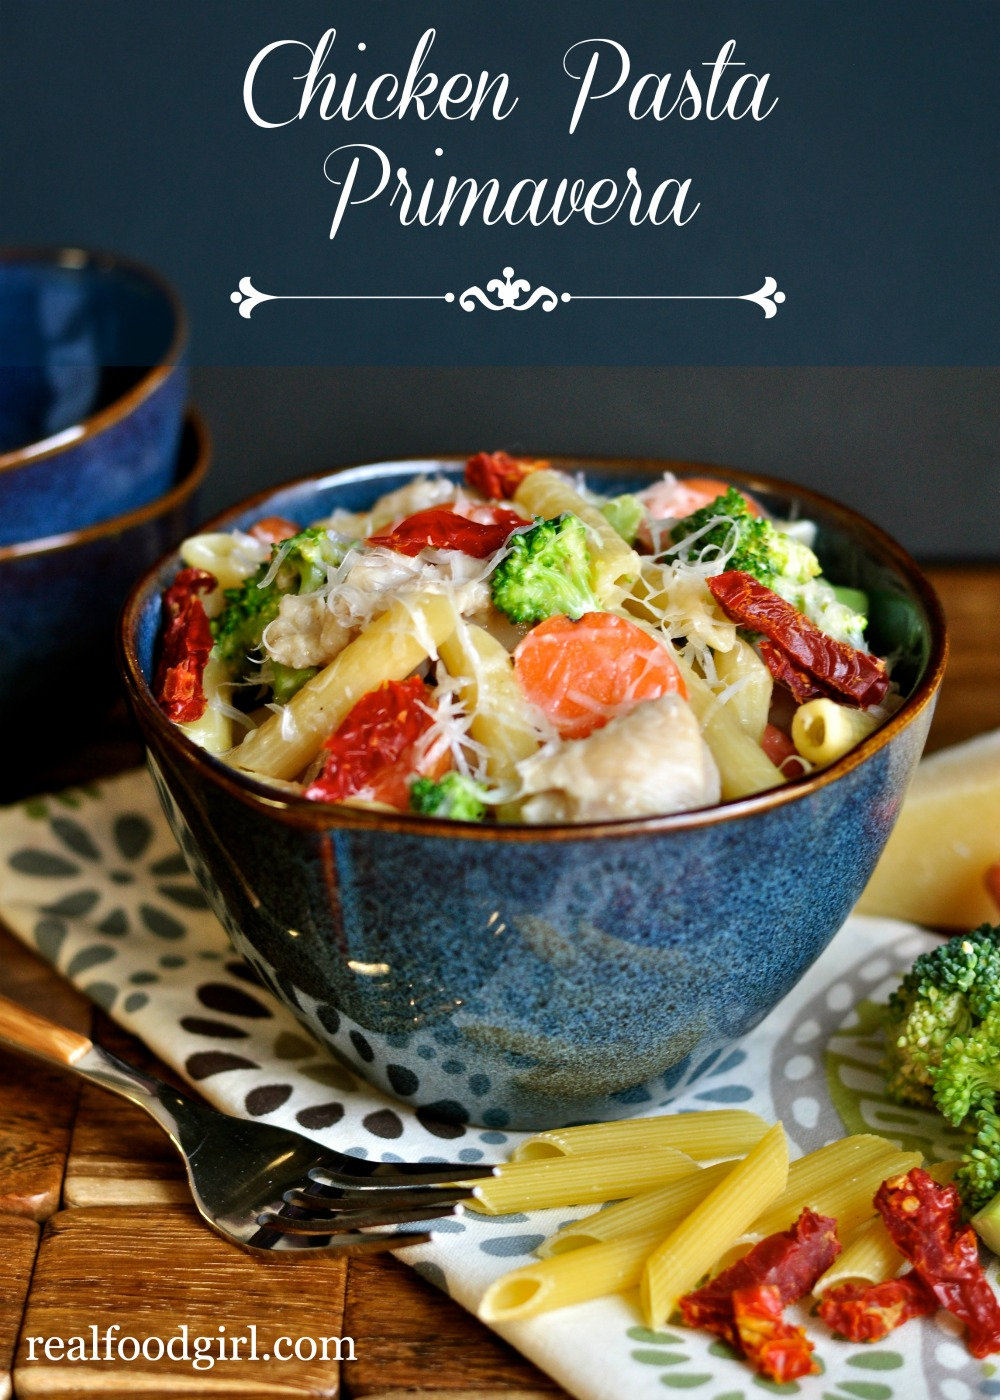 Real food chicken pasta primavera real food girl chicken pasta primavera by real food girl unmodified yes please forumfinder Image collections